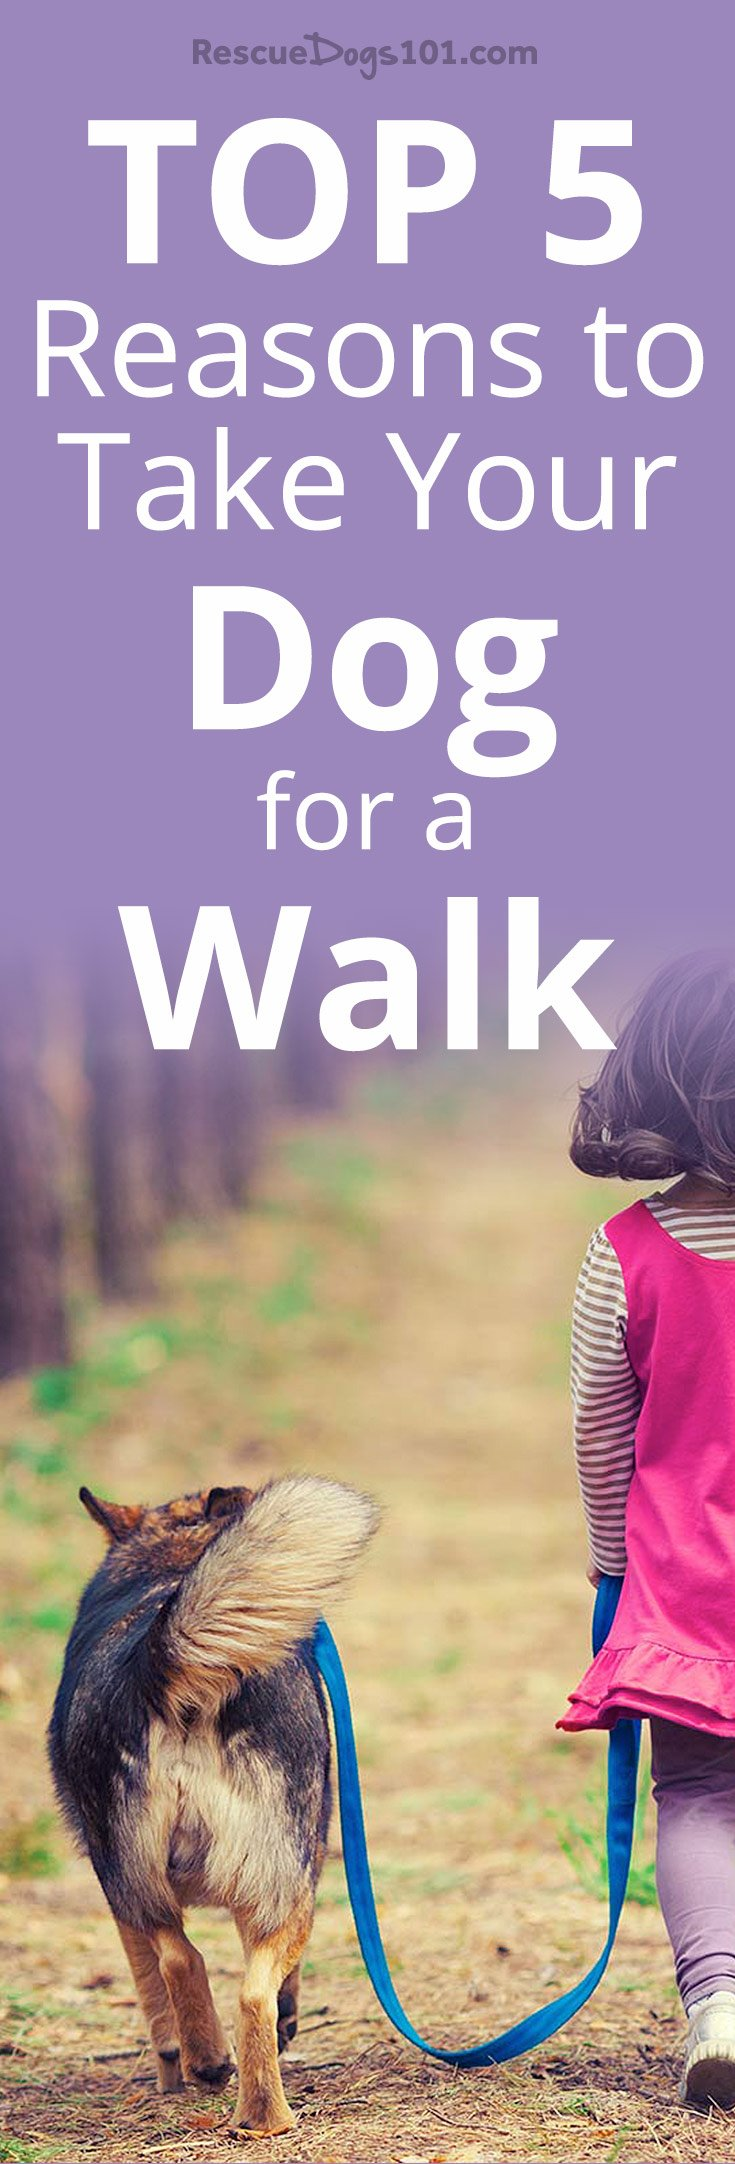 Top 5 Reasons to Take Your Dog for a Walk